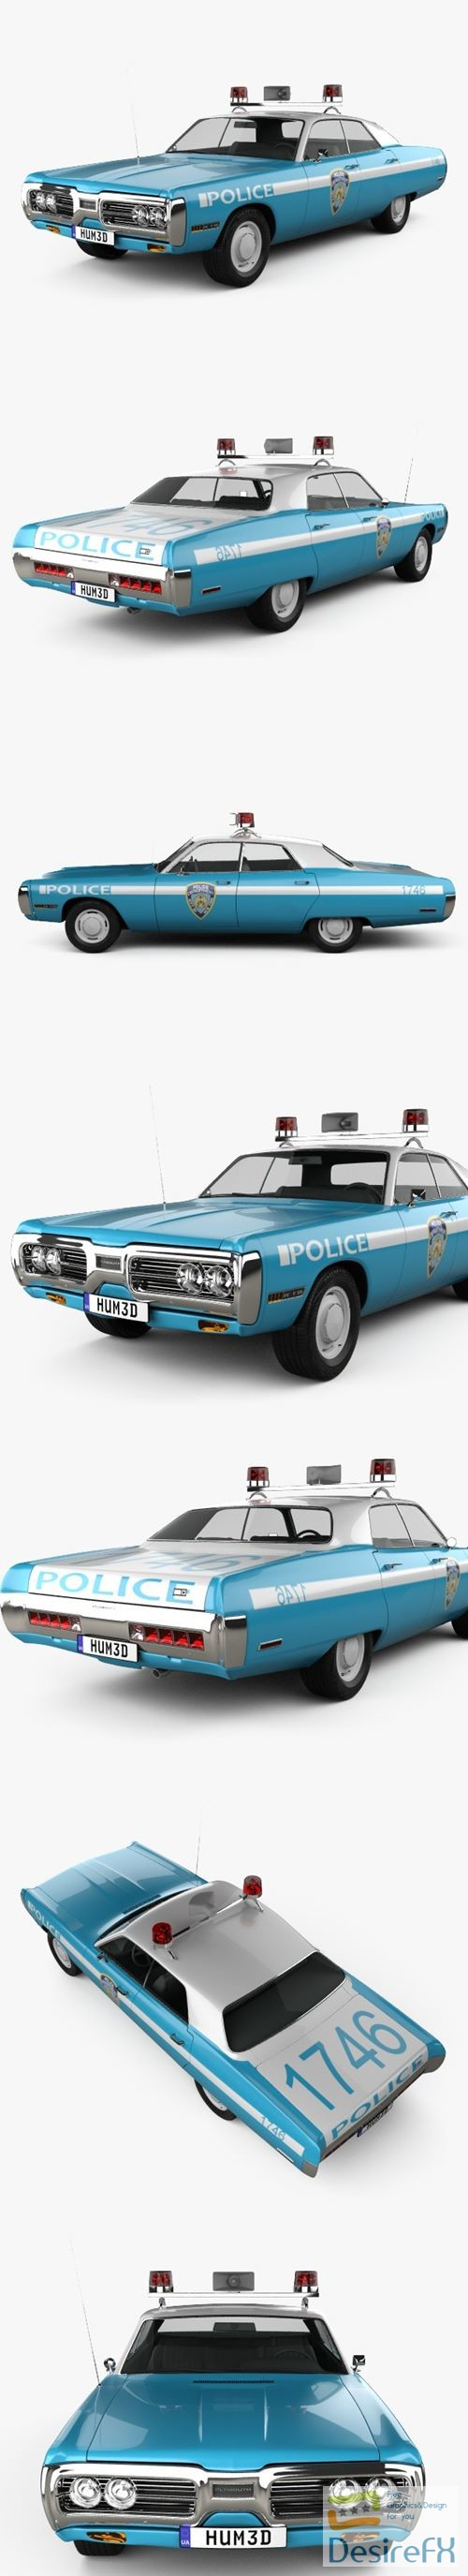 3d-models - Plymouth Fury Police 1972 3D Model